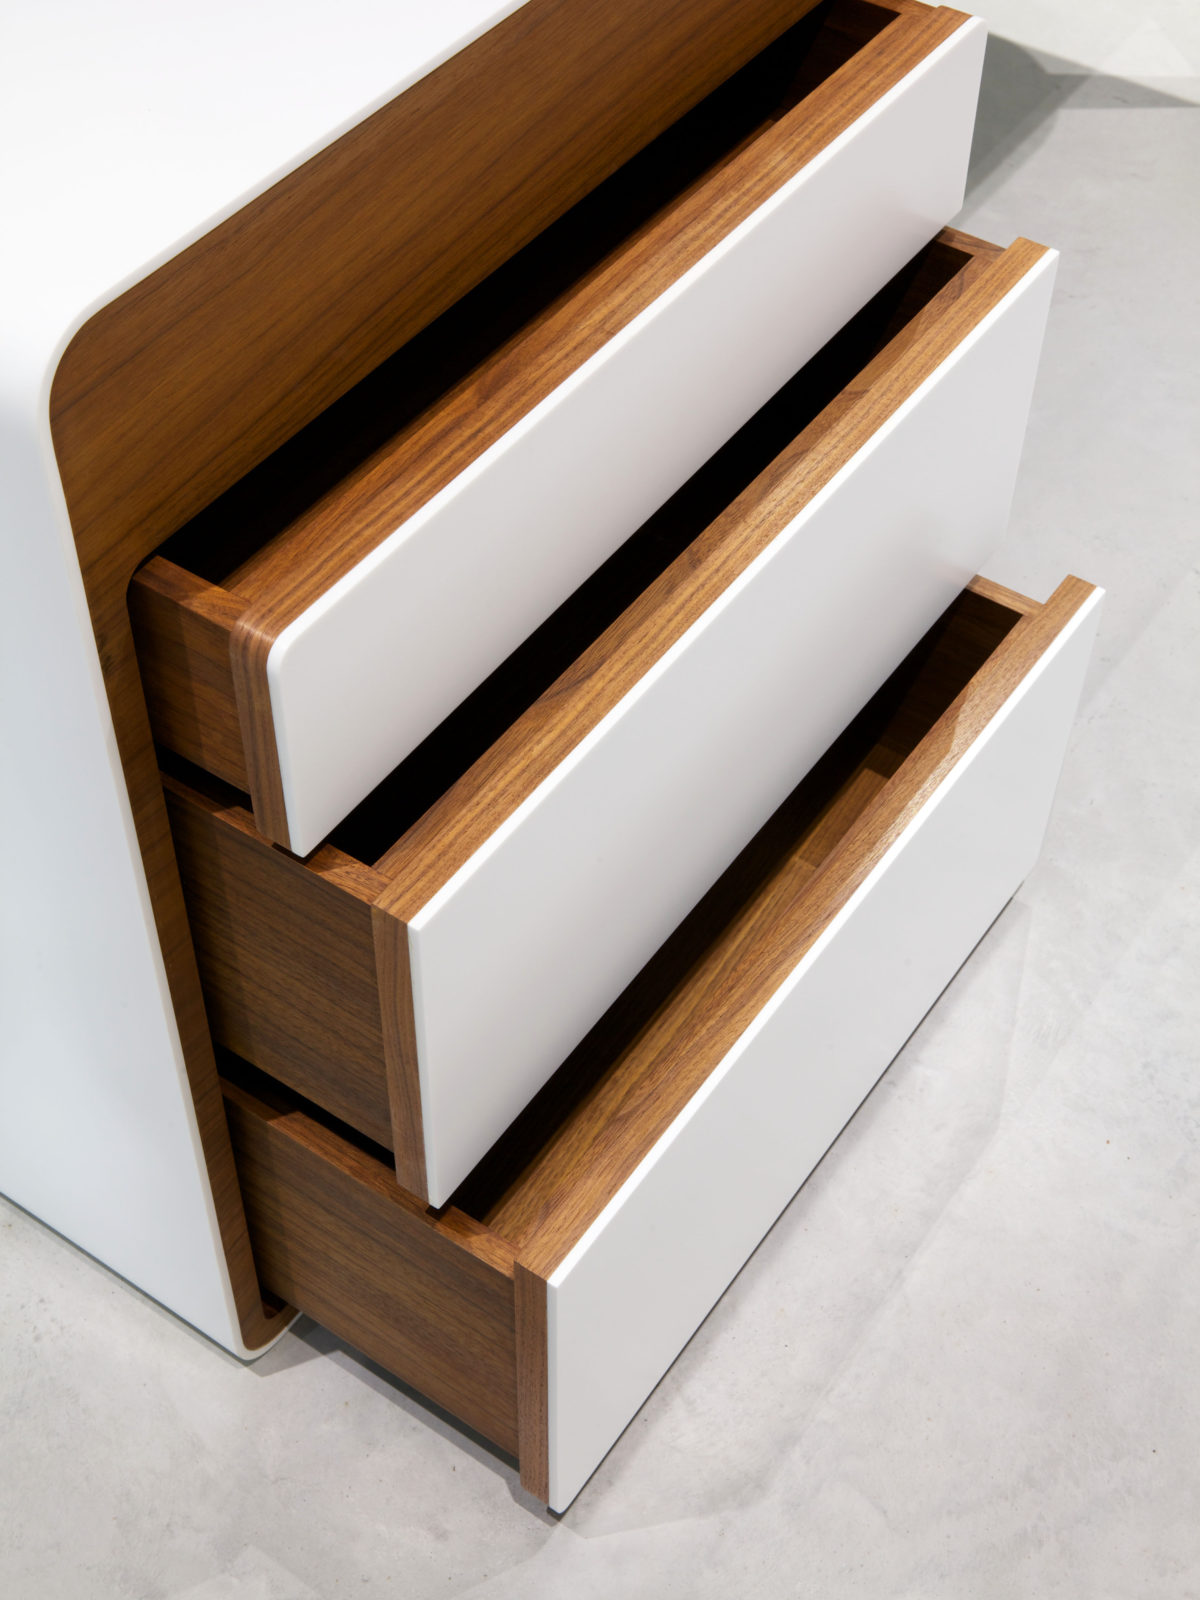 walnut drawers with Corian front